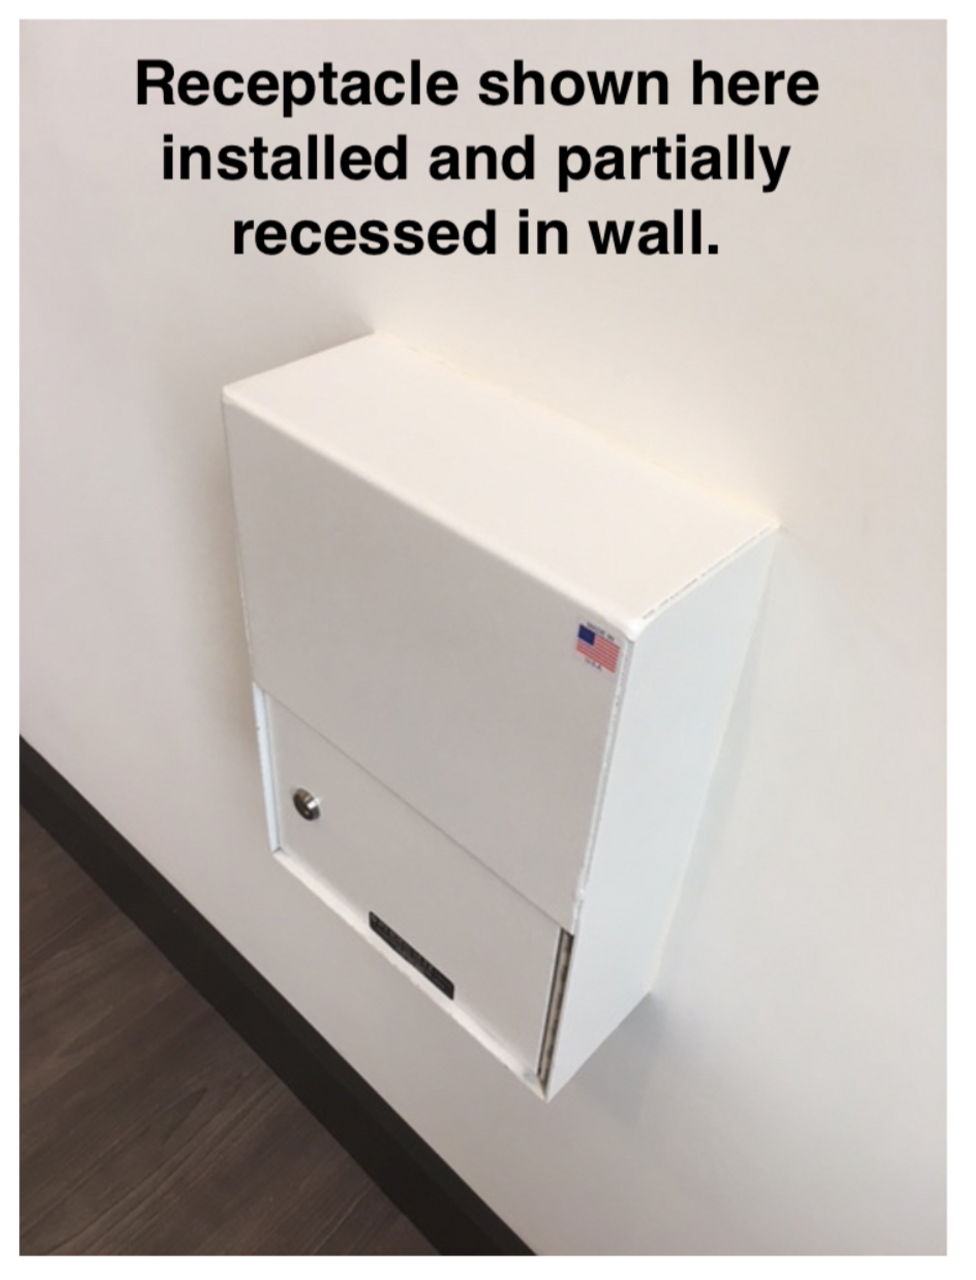 PVNDPRO903 receptacle shown installed recessed in wall